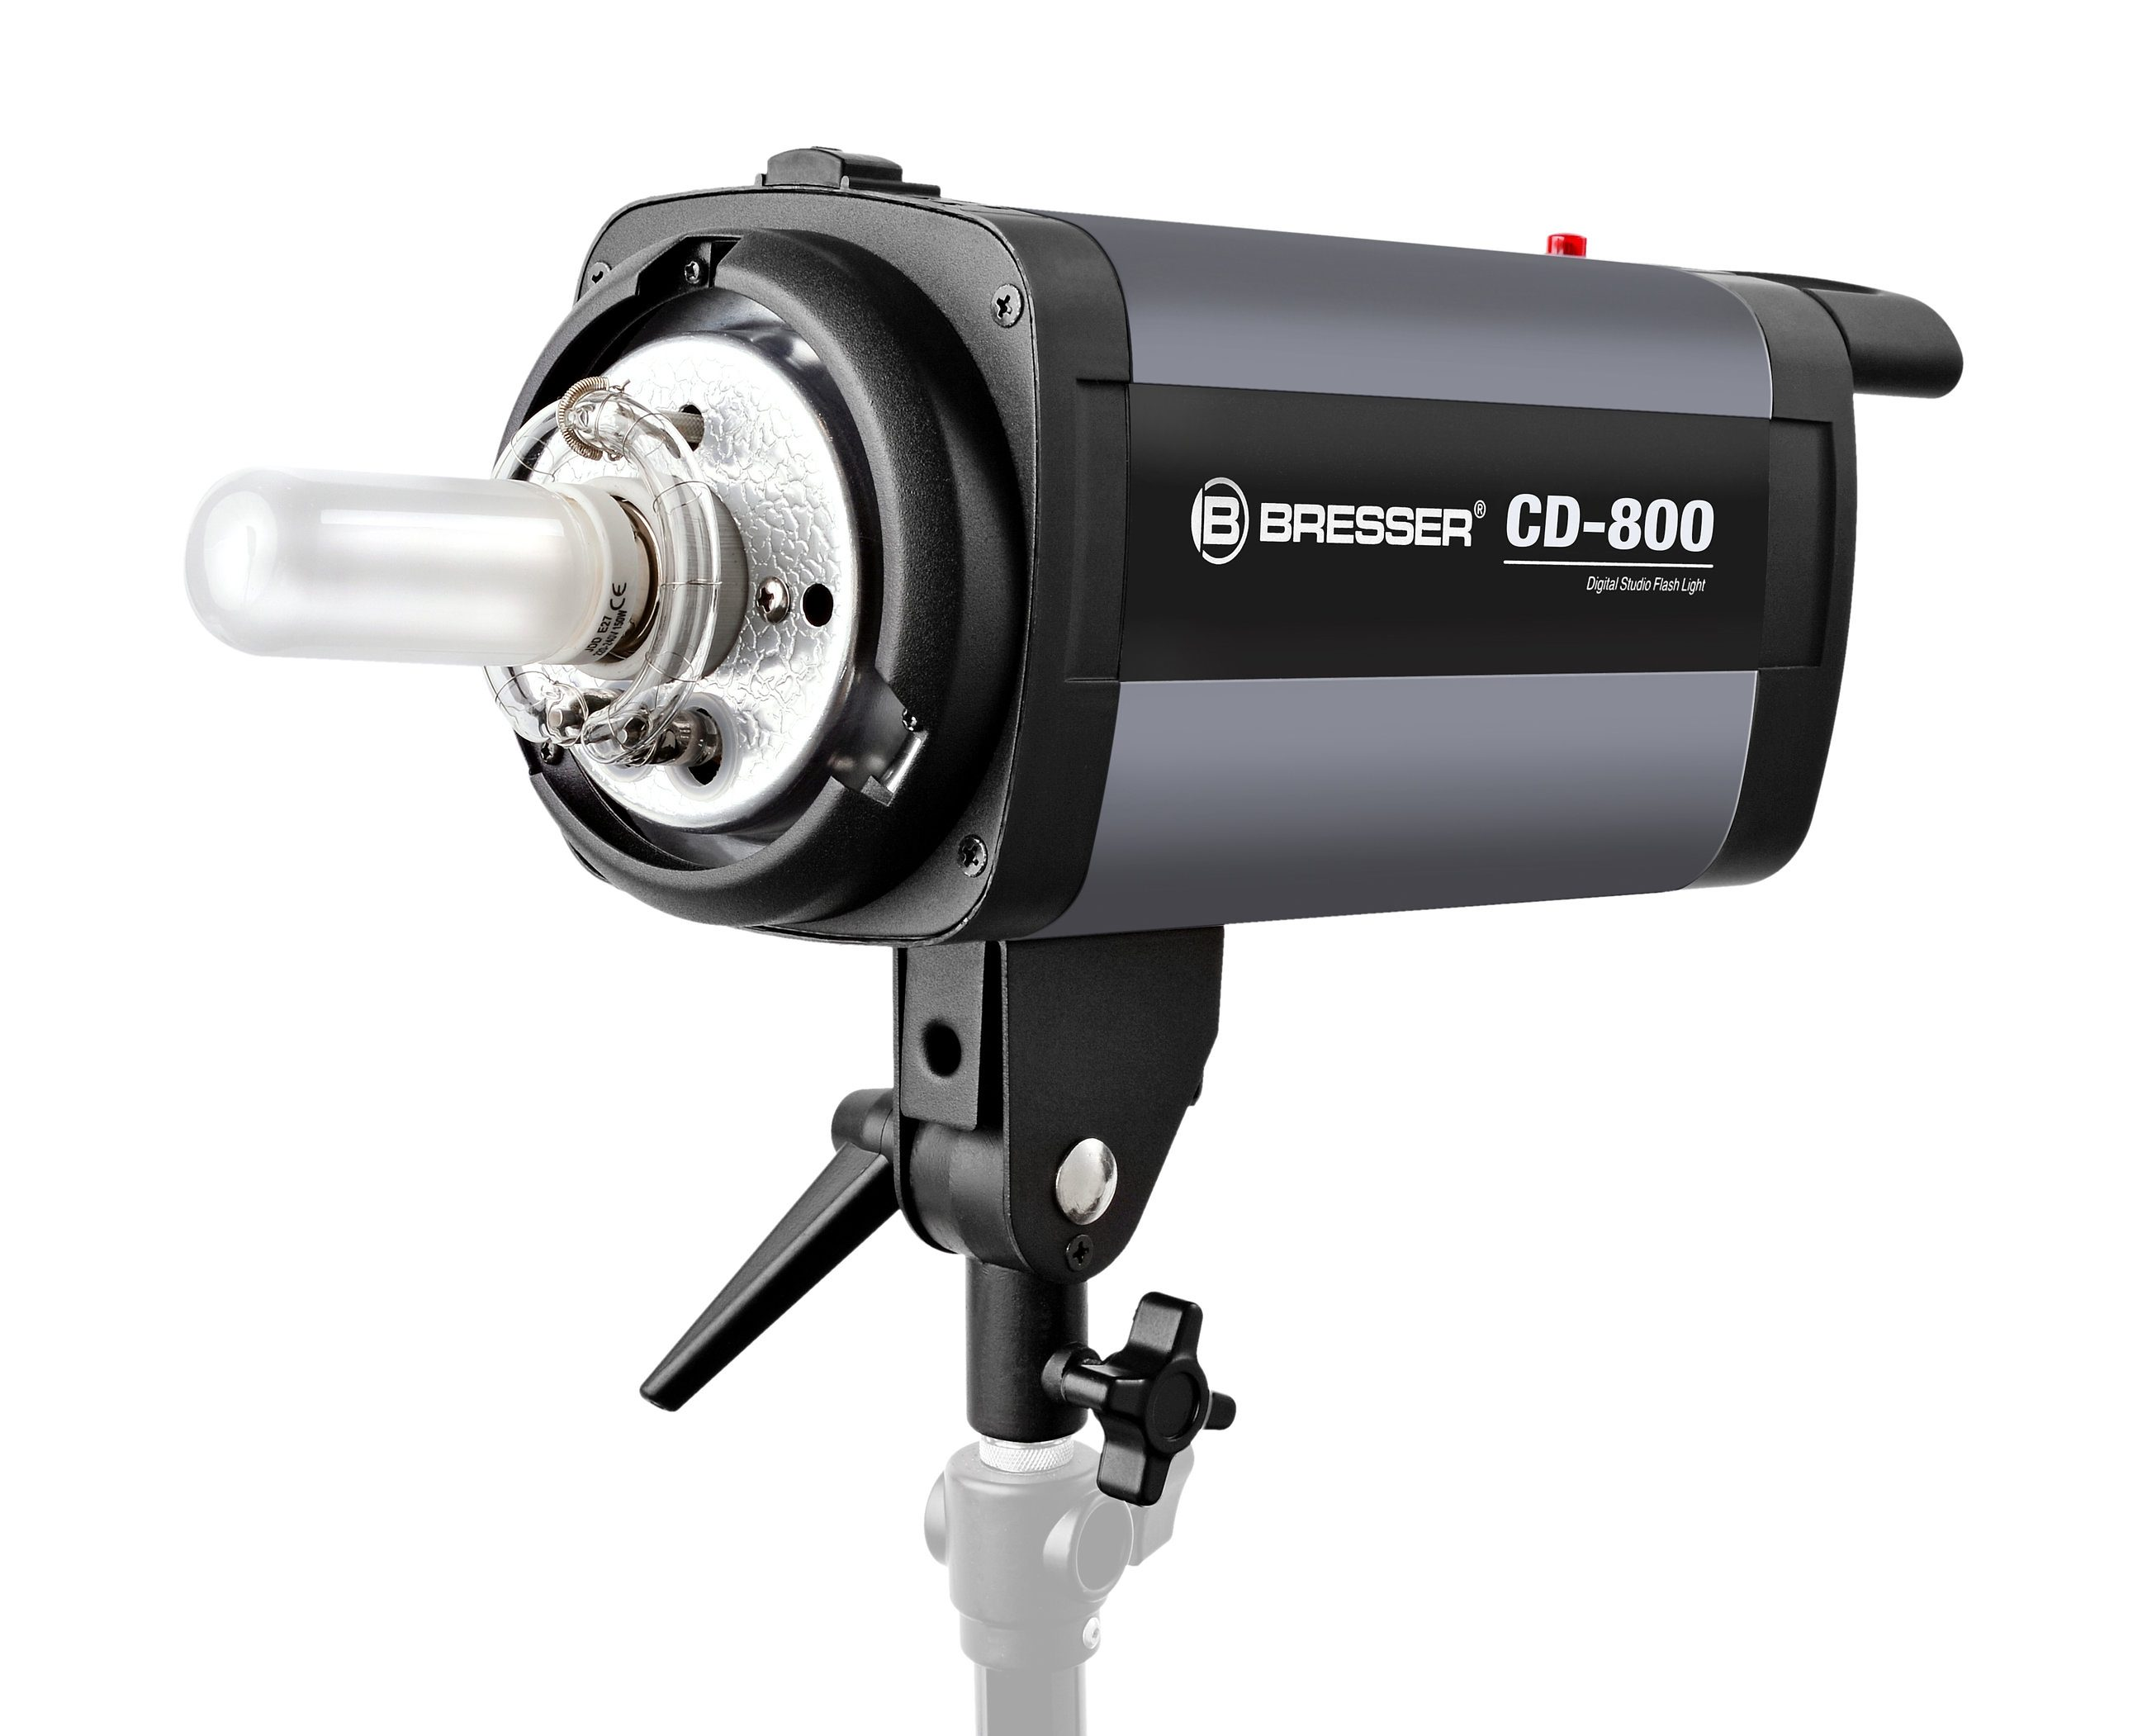 BRESSER Fotostudio »BRESSER CD-800 digitaler Studioblitz«